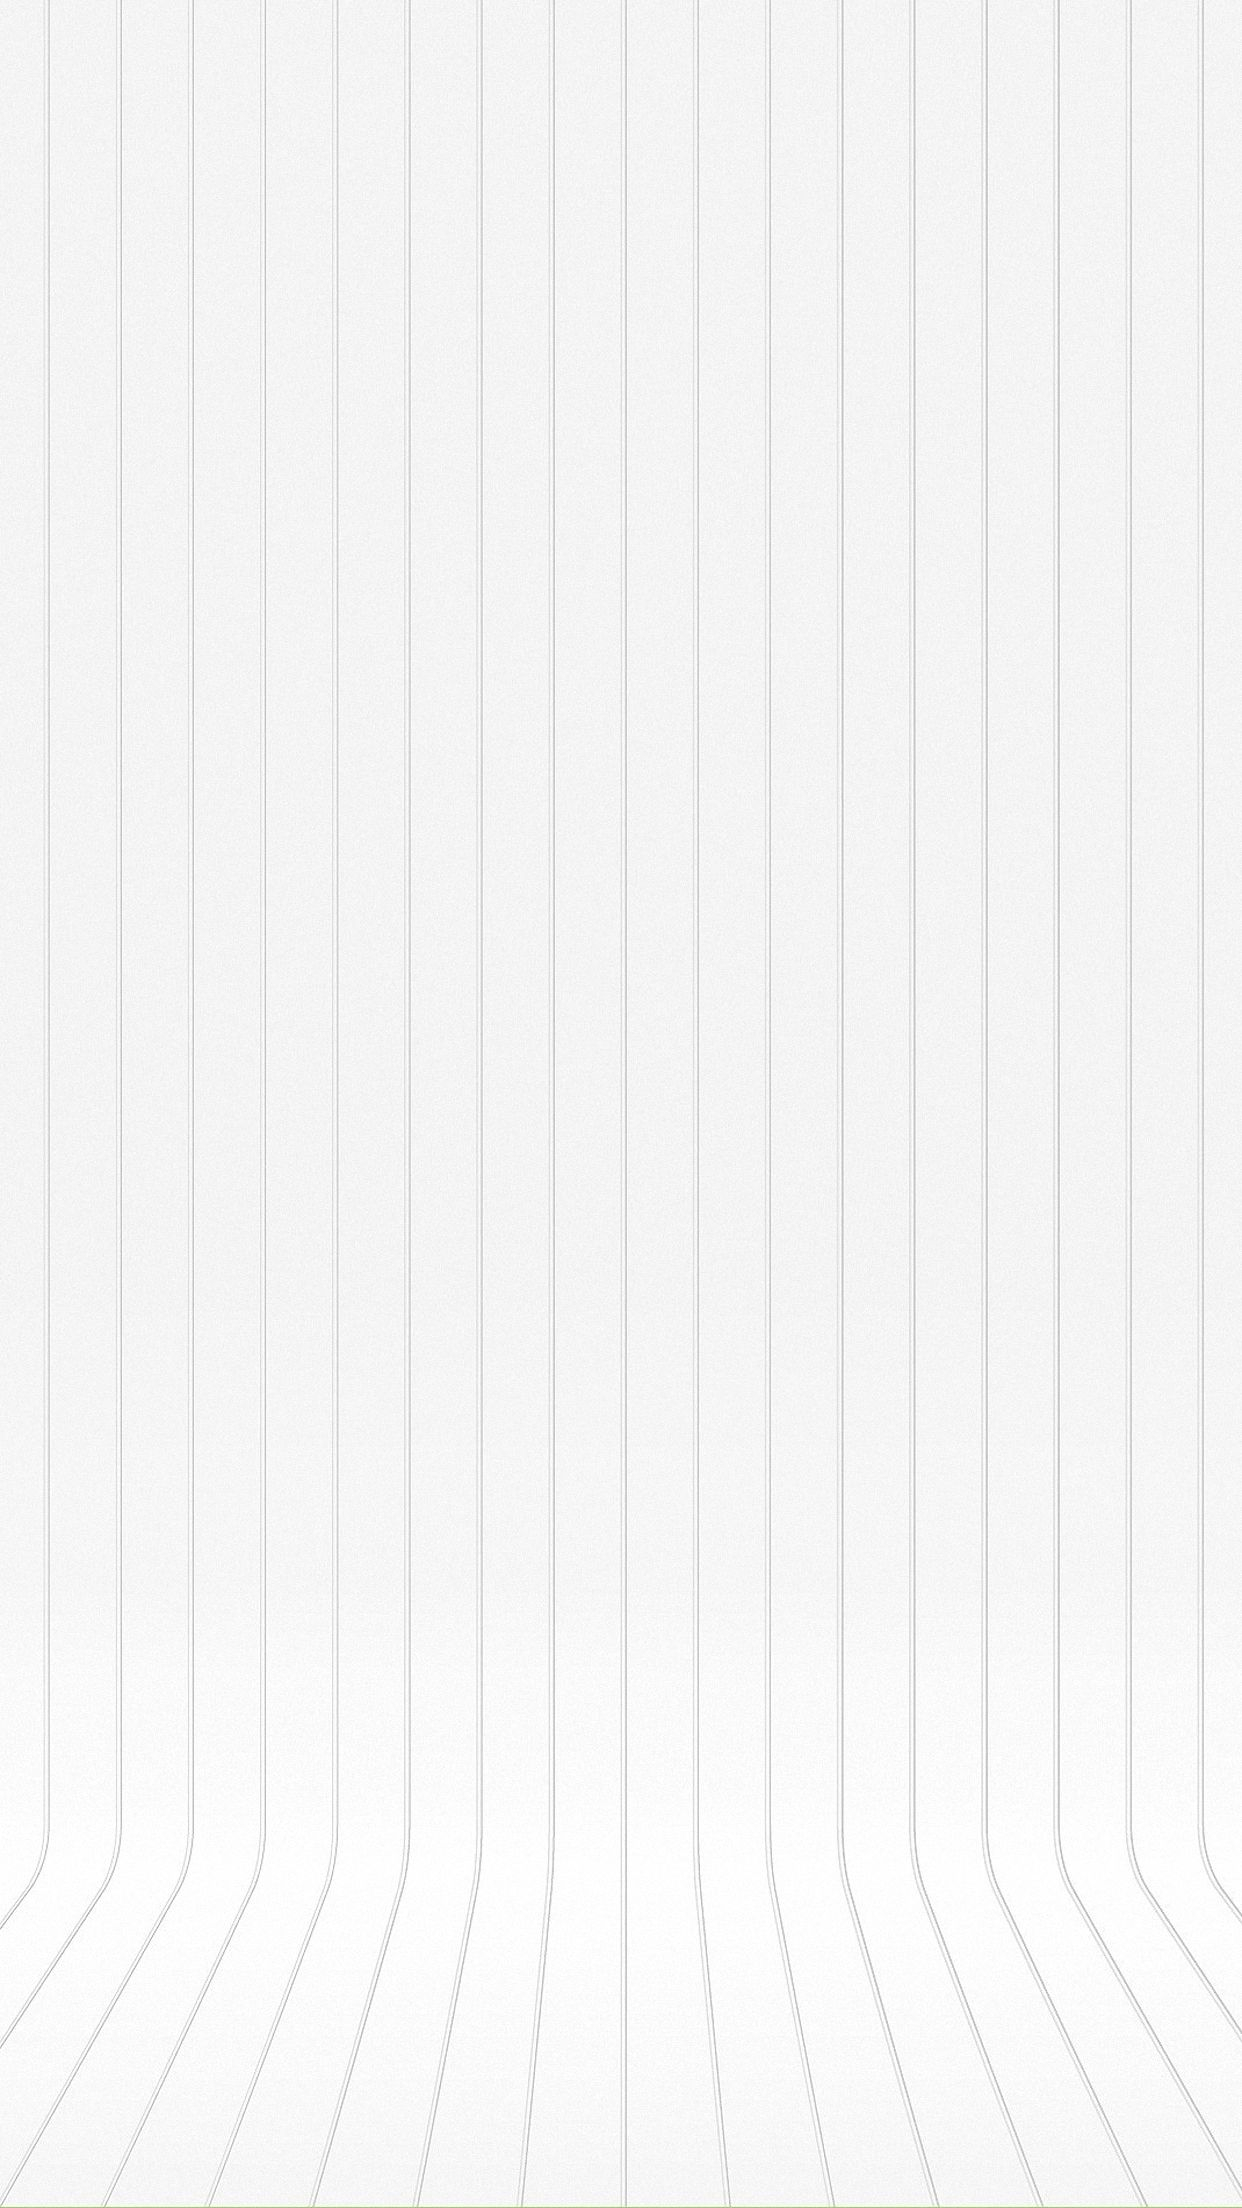 40 White iPhone 7 Plus Wallpapers Download at WallpaperBro